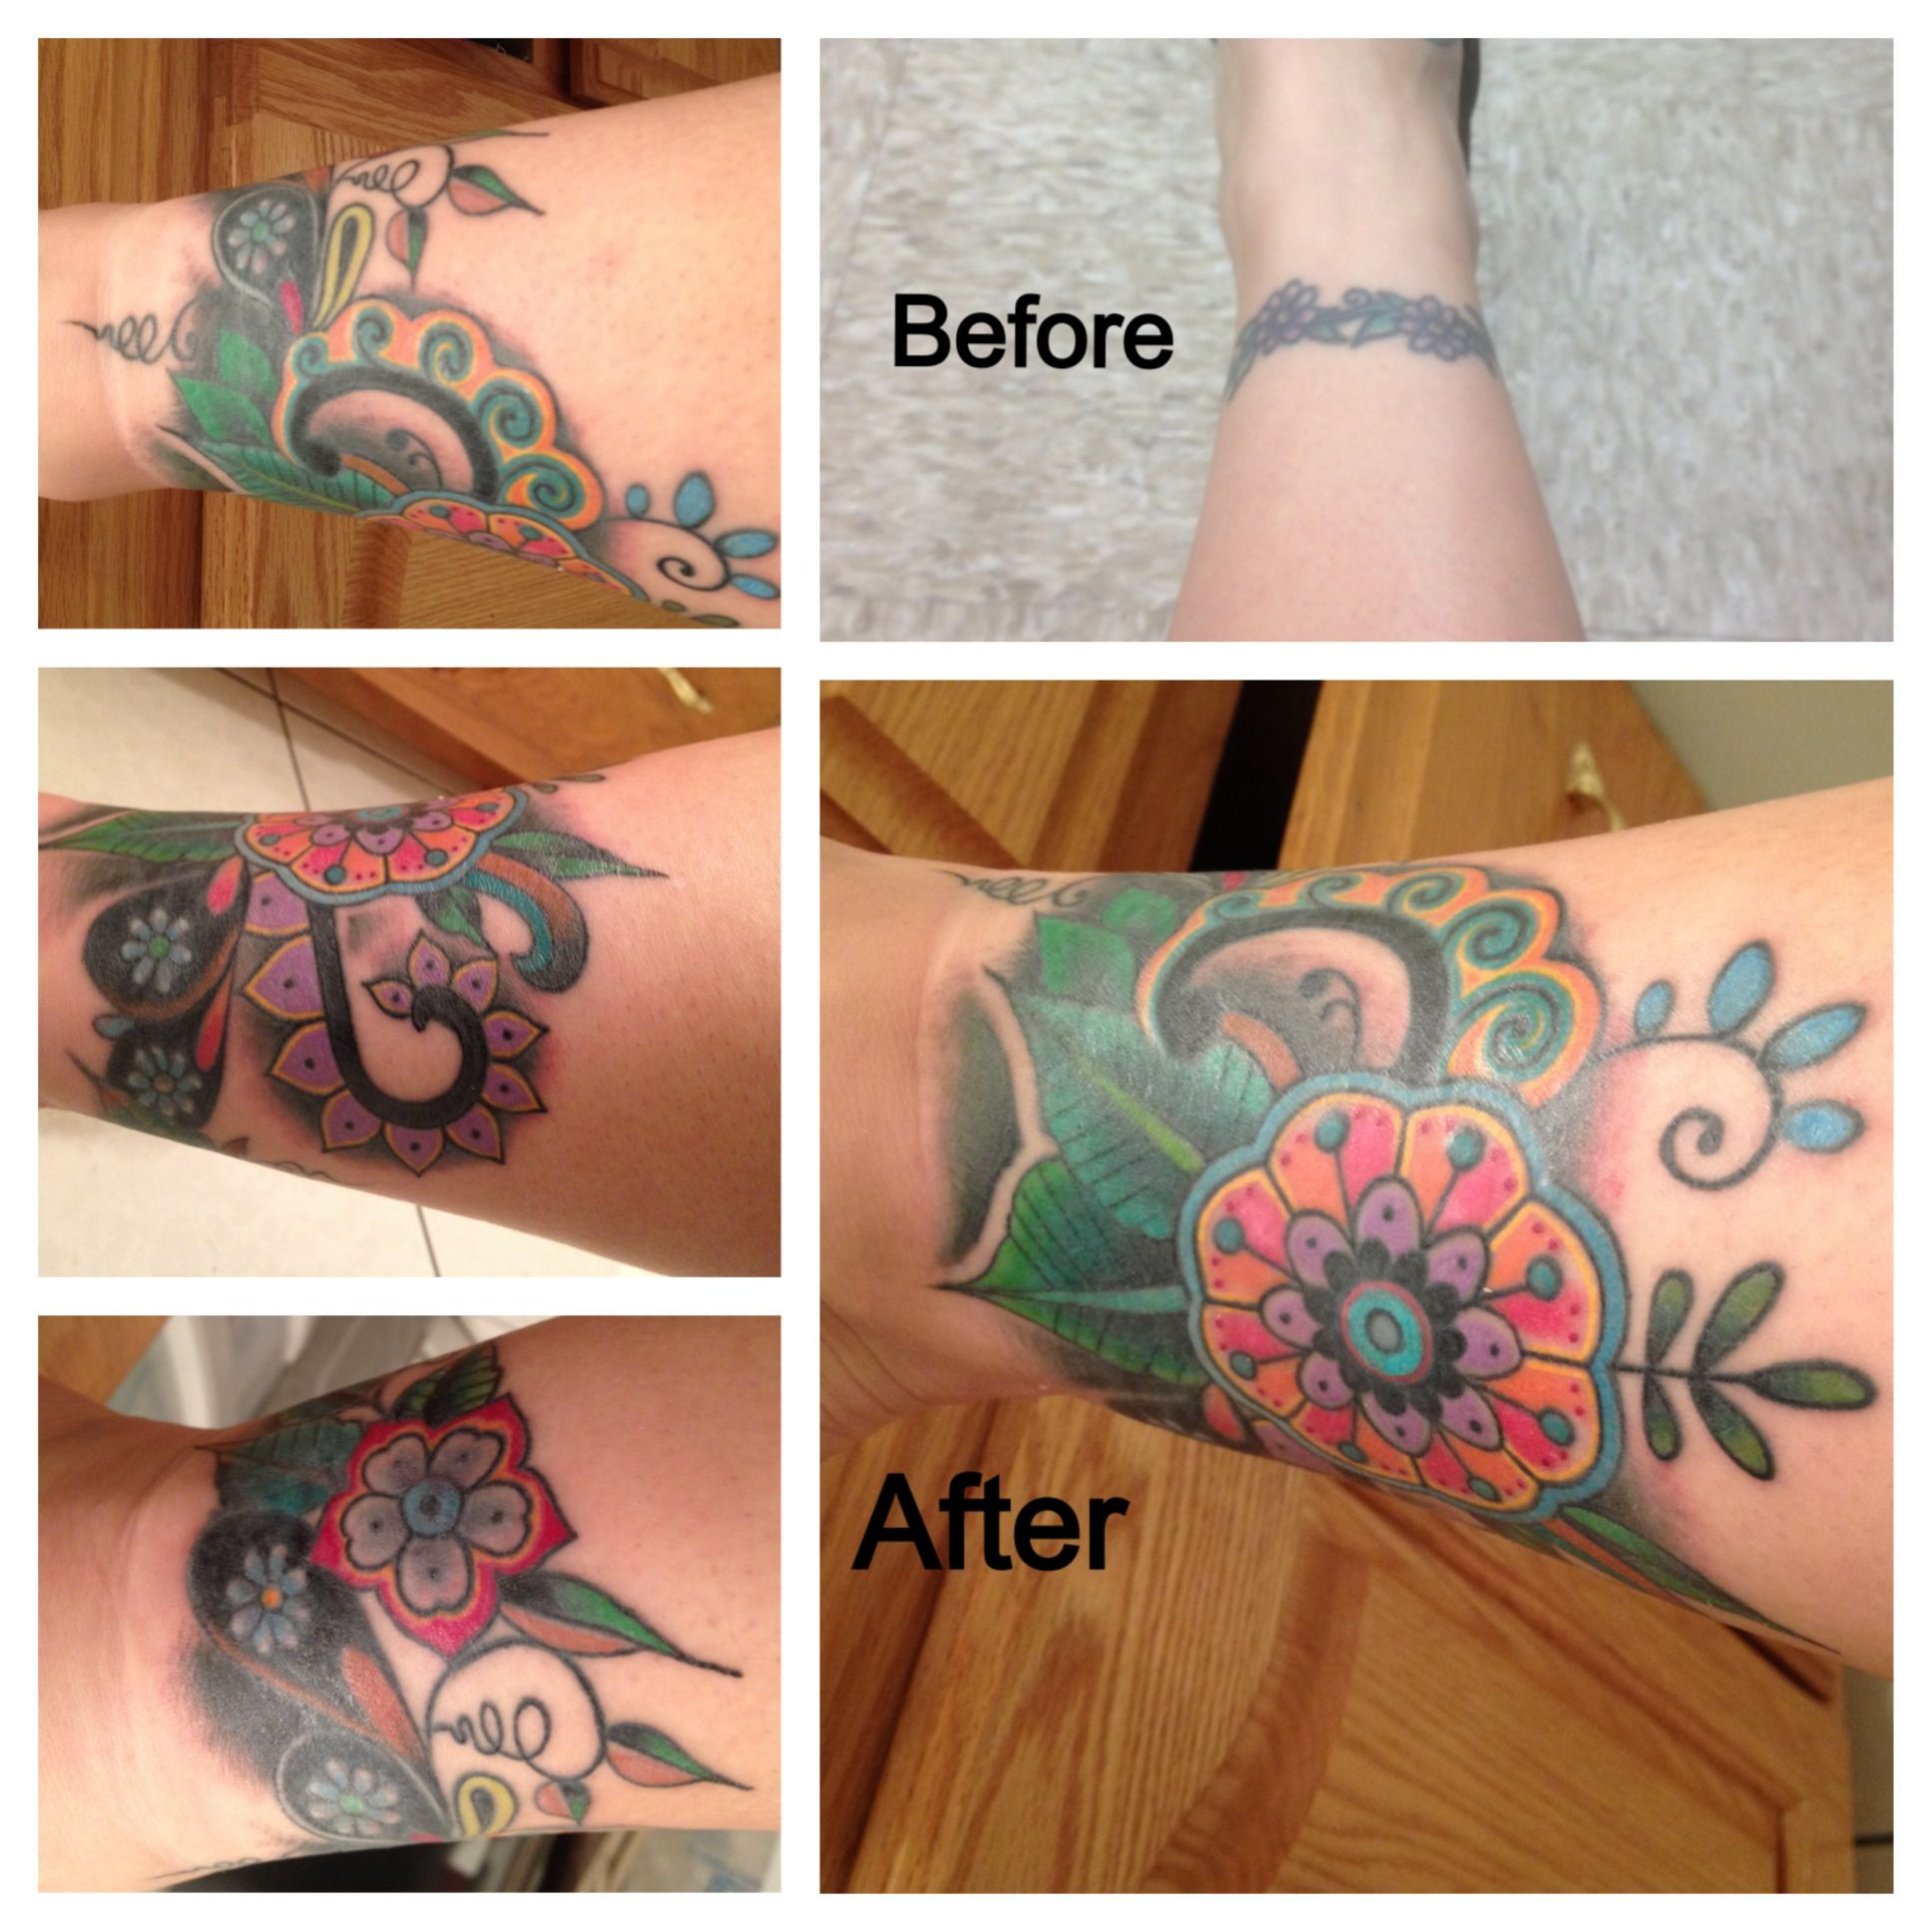 Pin By Rachel Delamar On Tattoos Ankle Tattoo Cover Up Tattoos Ankle Bracelet Tattoo